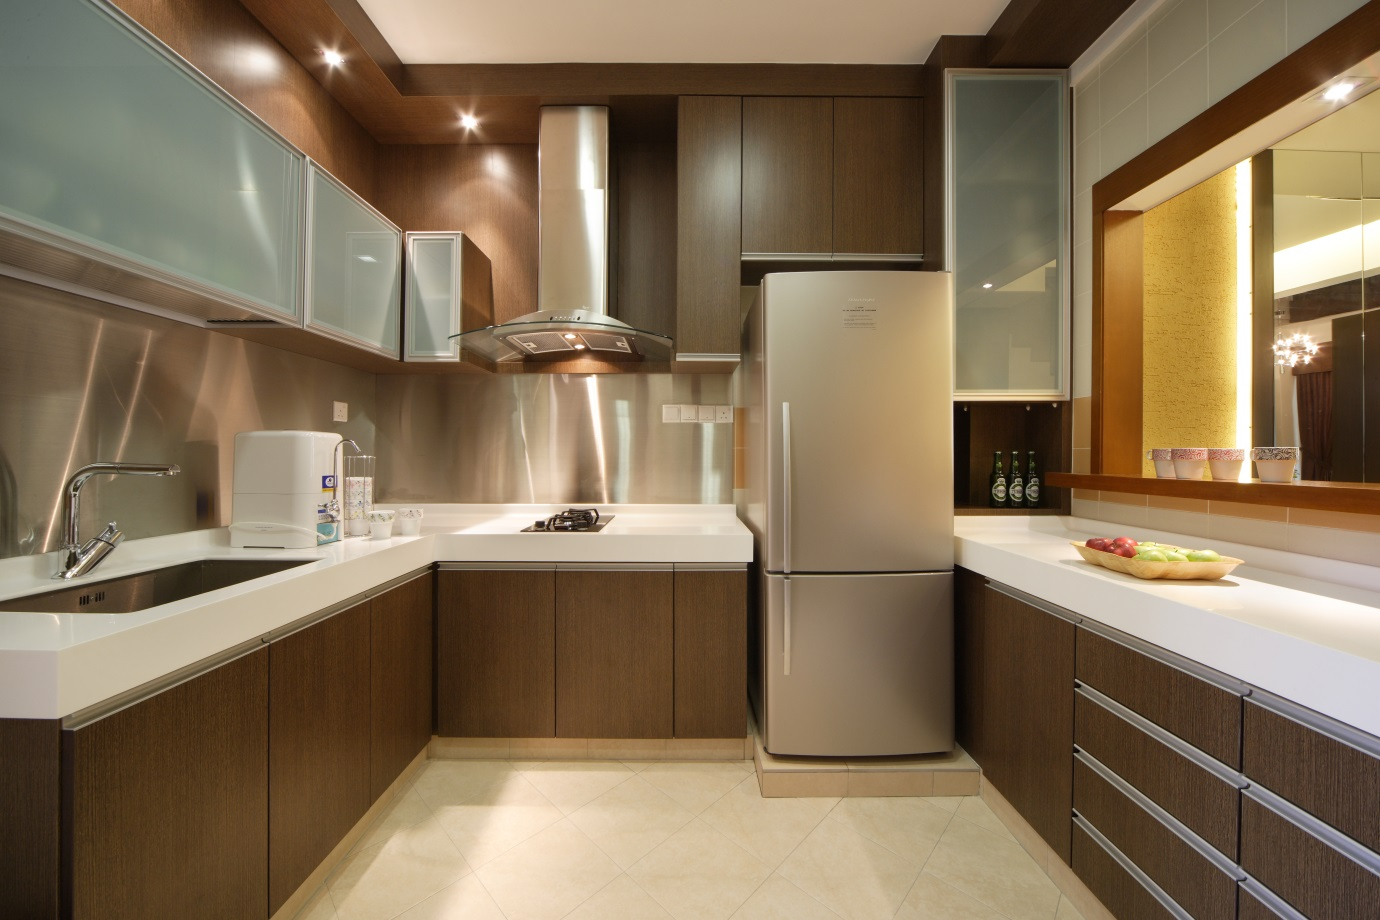 Landed Property Kitchen Interior Design Singapore | Landed